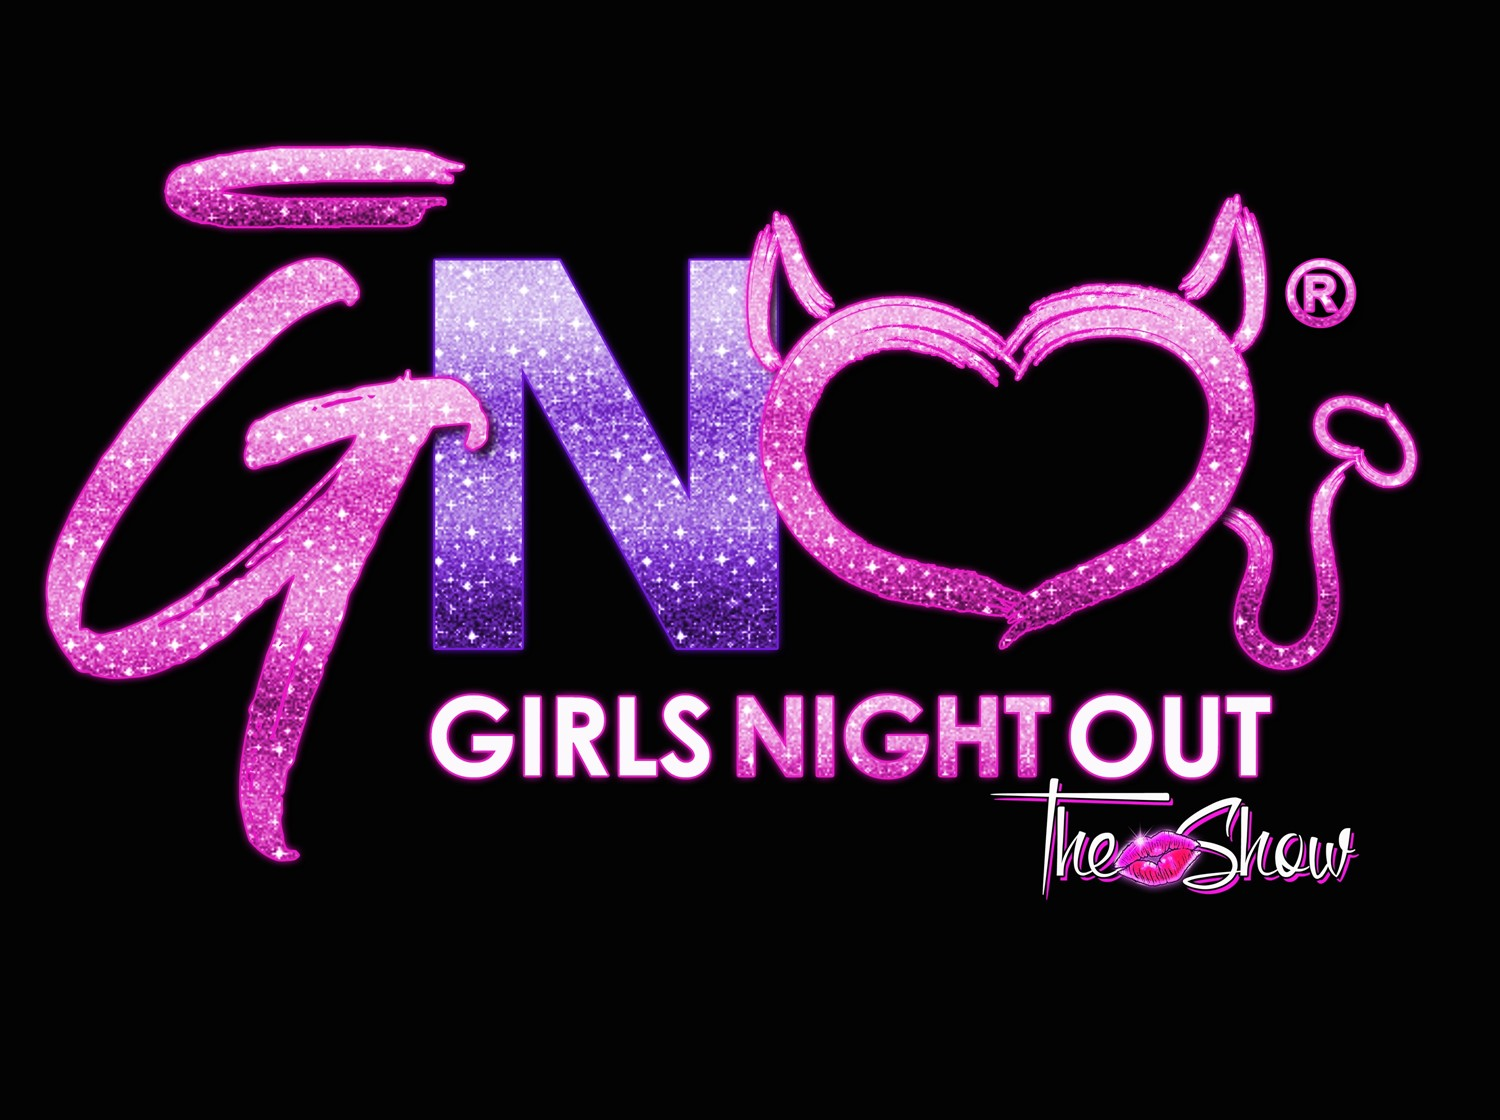 JJ's Bar & Grill (18+) Poplar Bluff, MO on may. 11, 20:00@JJ's Bar and Grill - Buy tickets and Get information on Girls Night Out the Show tickets.girlsnightouttheshow.com